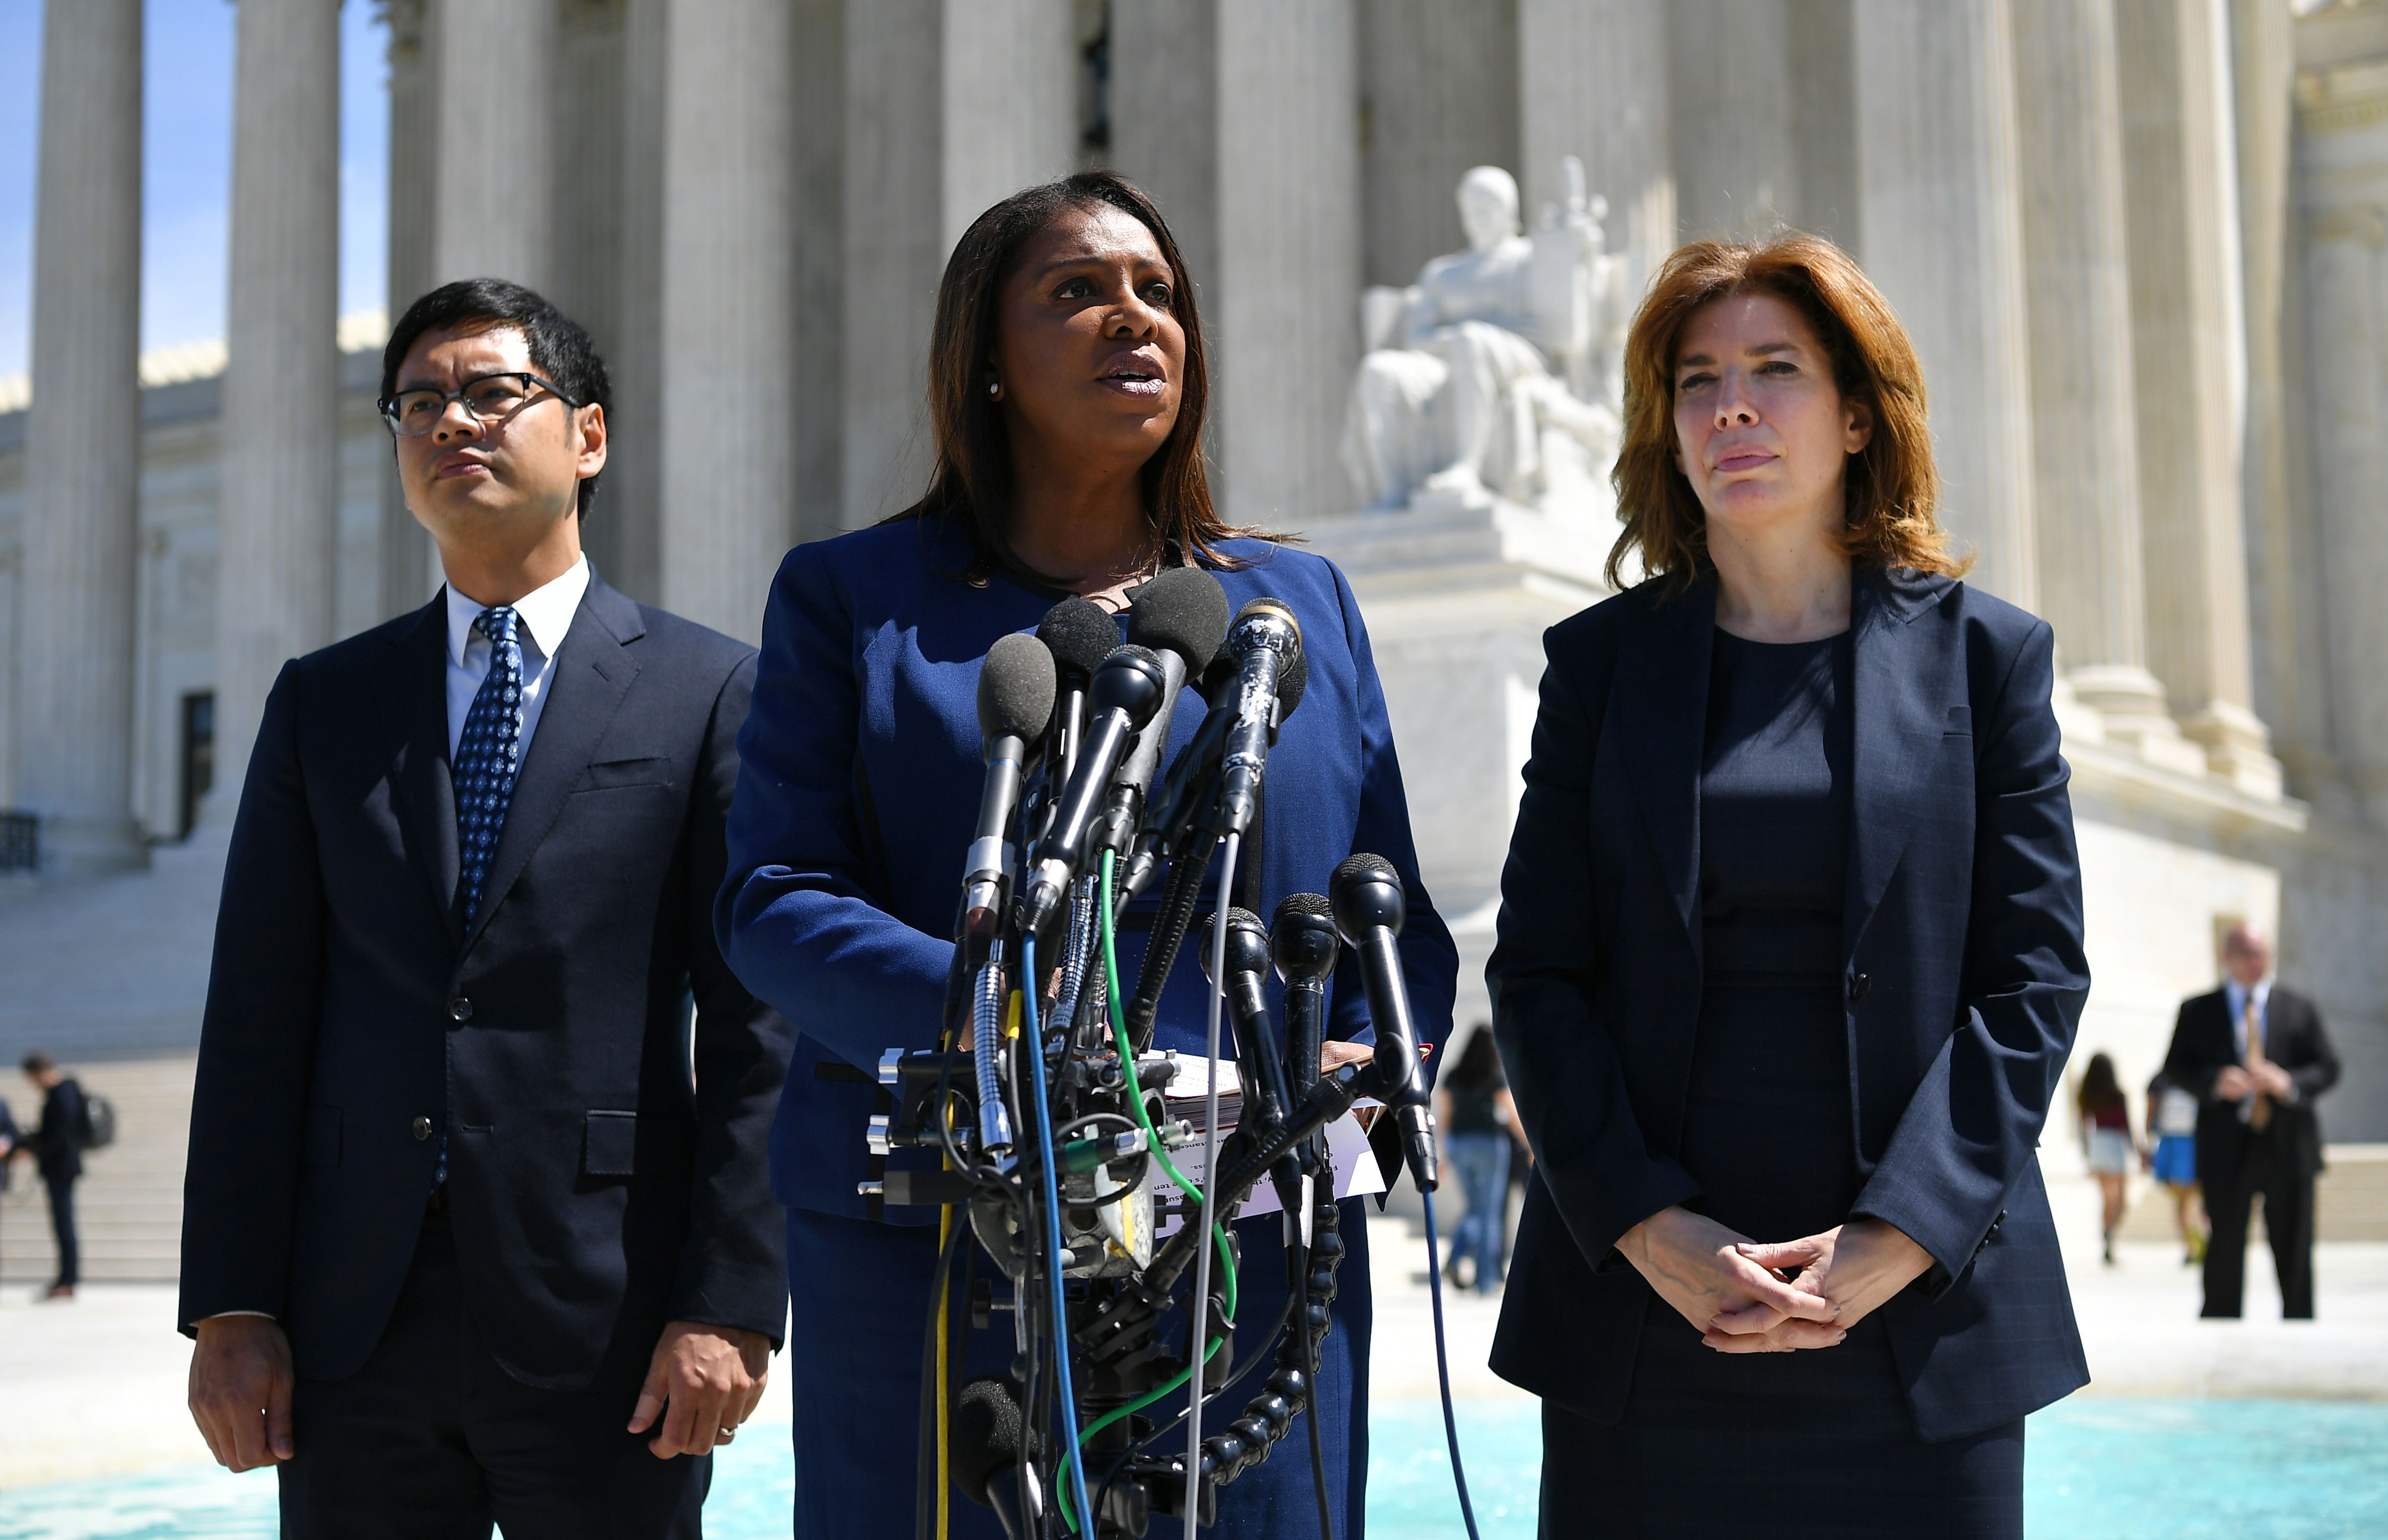 The plaintiffs in the census citizenship question case -- New York Attorney General Letitia James (C) New York City Census Director Julie Menin (R) and the ACLU's Dale Ho (L) -- speak to reporters outside of the Supreme Court on April 23, 2019 (Mandel Ngan/AFP/Getty Images)